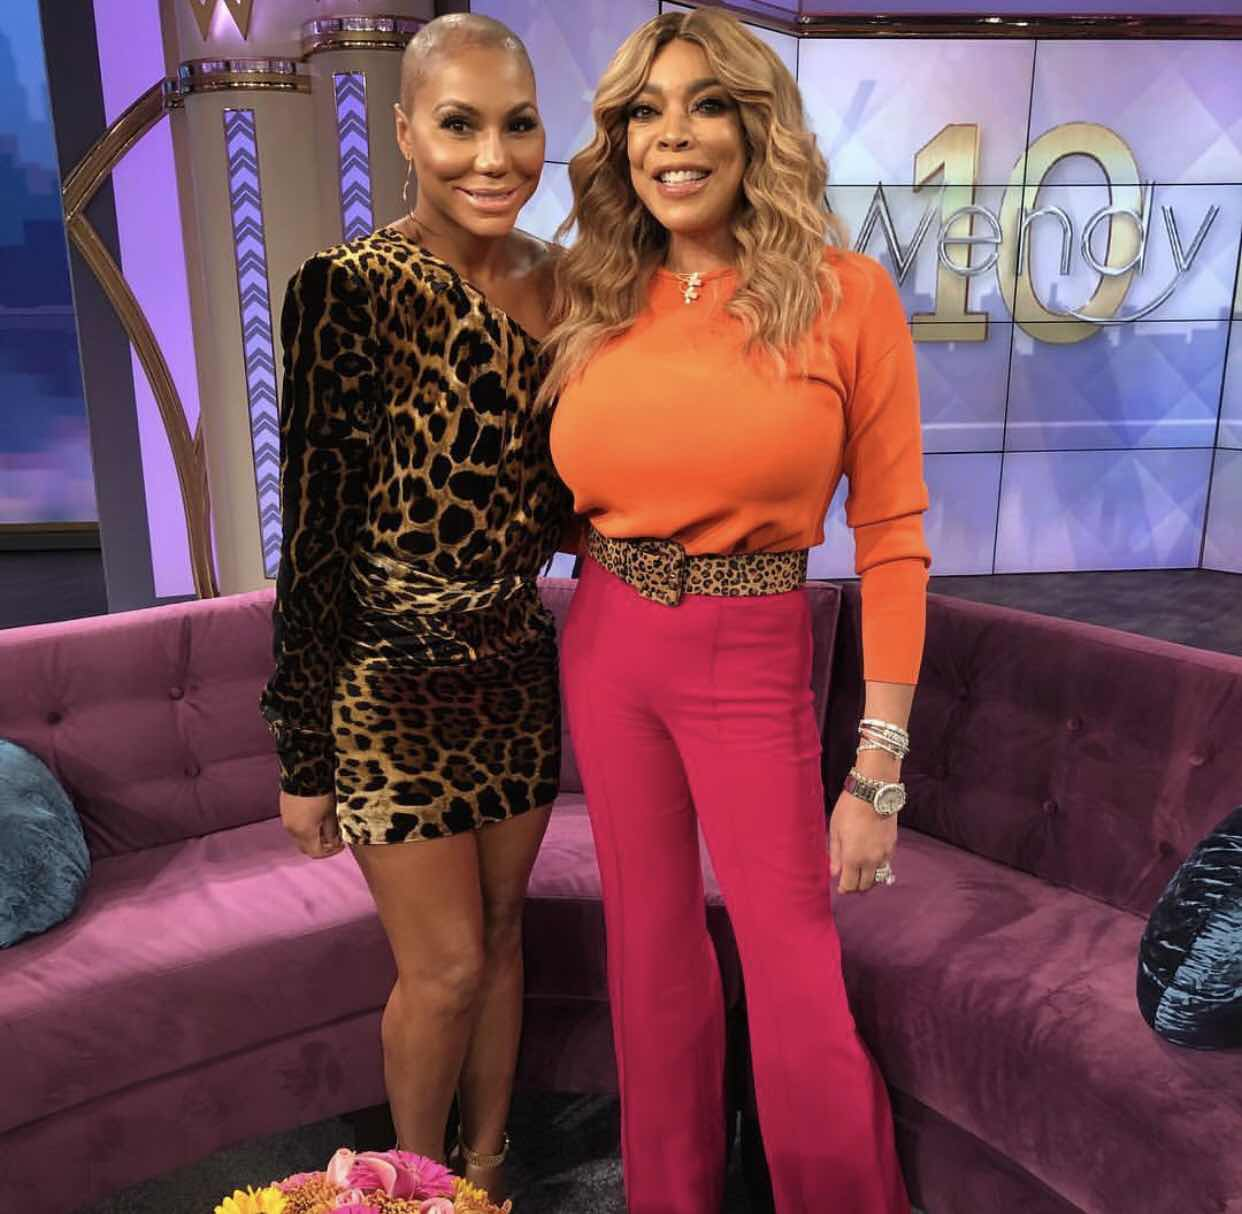 Tamar Braxton Tells Wendy Williams That She Would Love To Marry David Adefeso - Check Out The Video